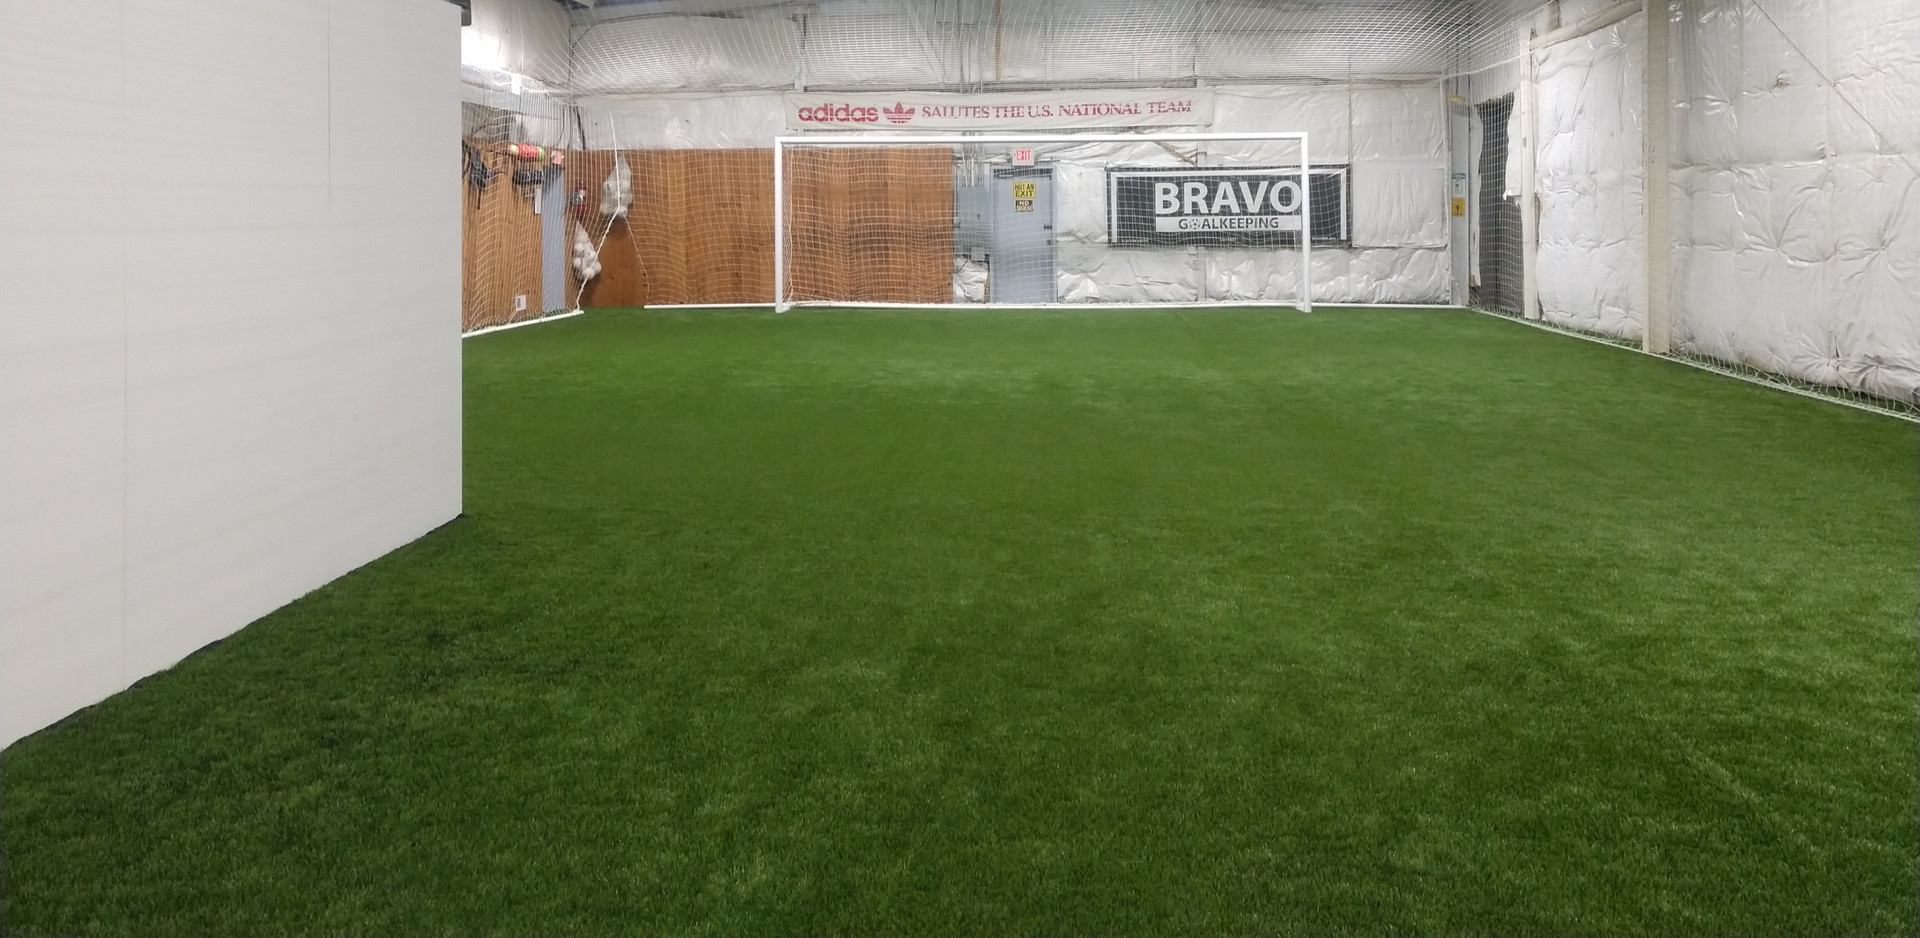 A goalkeeper specific facility